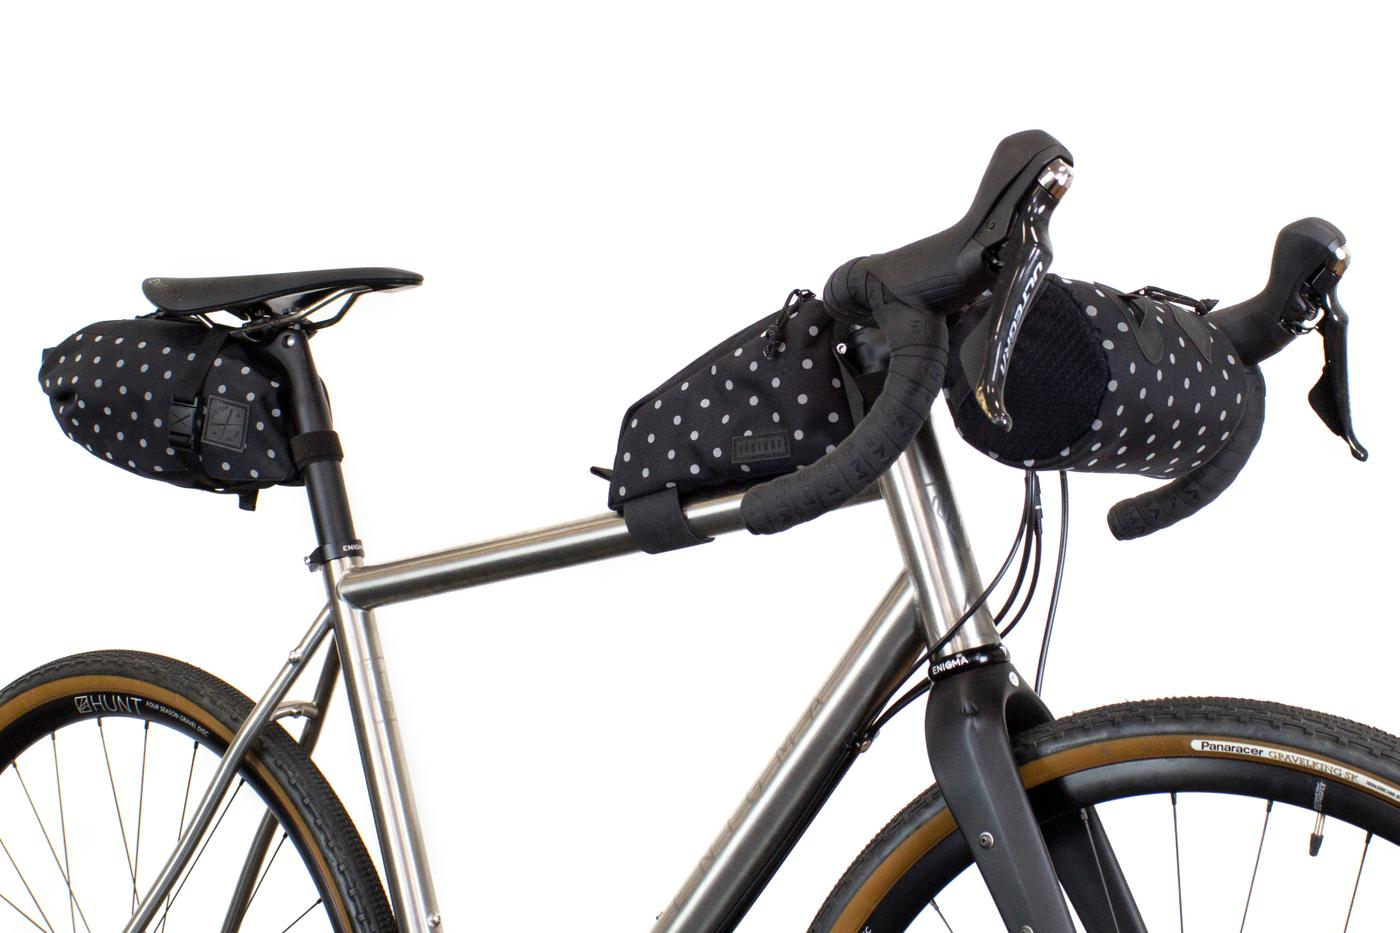 Restrap's Second Run of Polka Limited Edition Bikepacking Bags